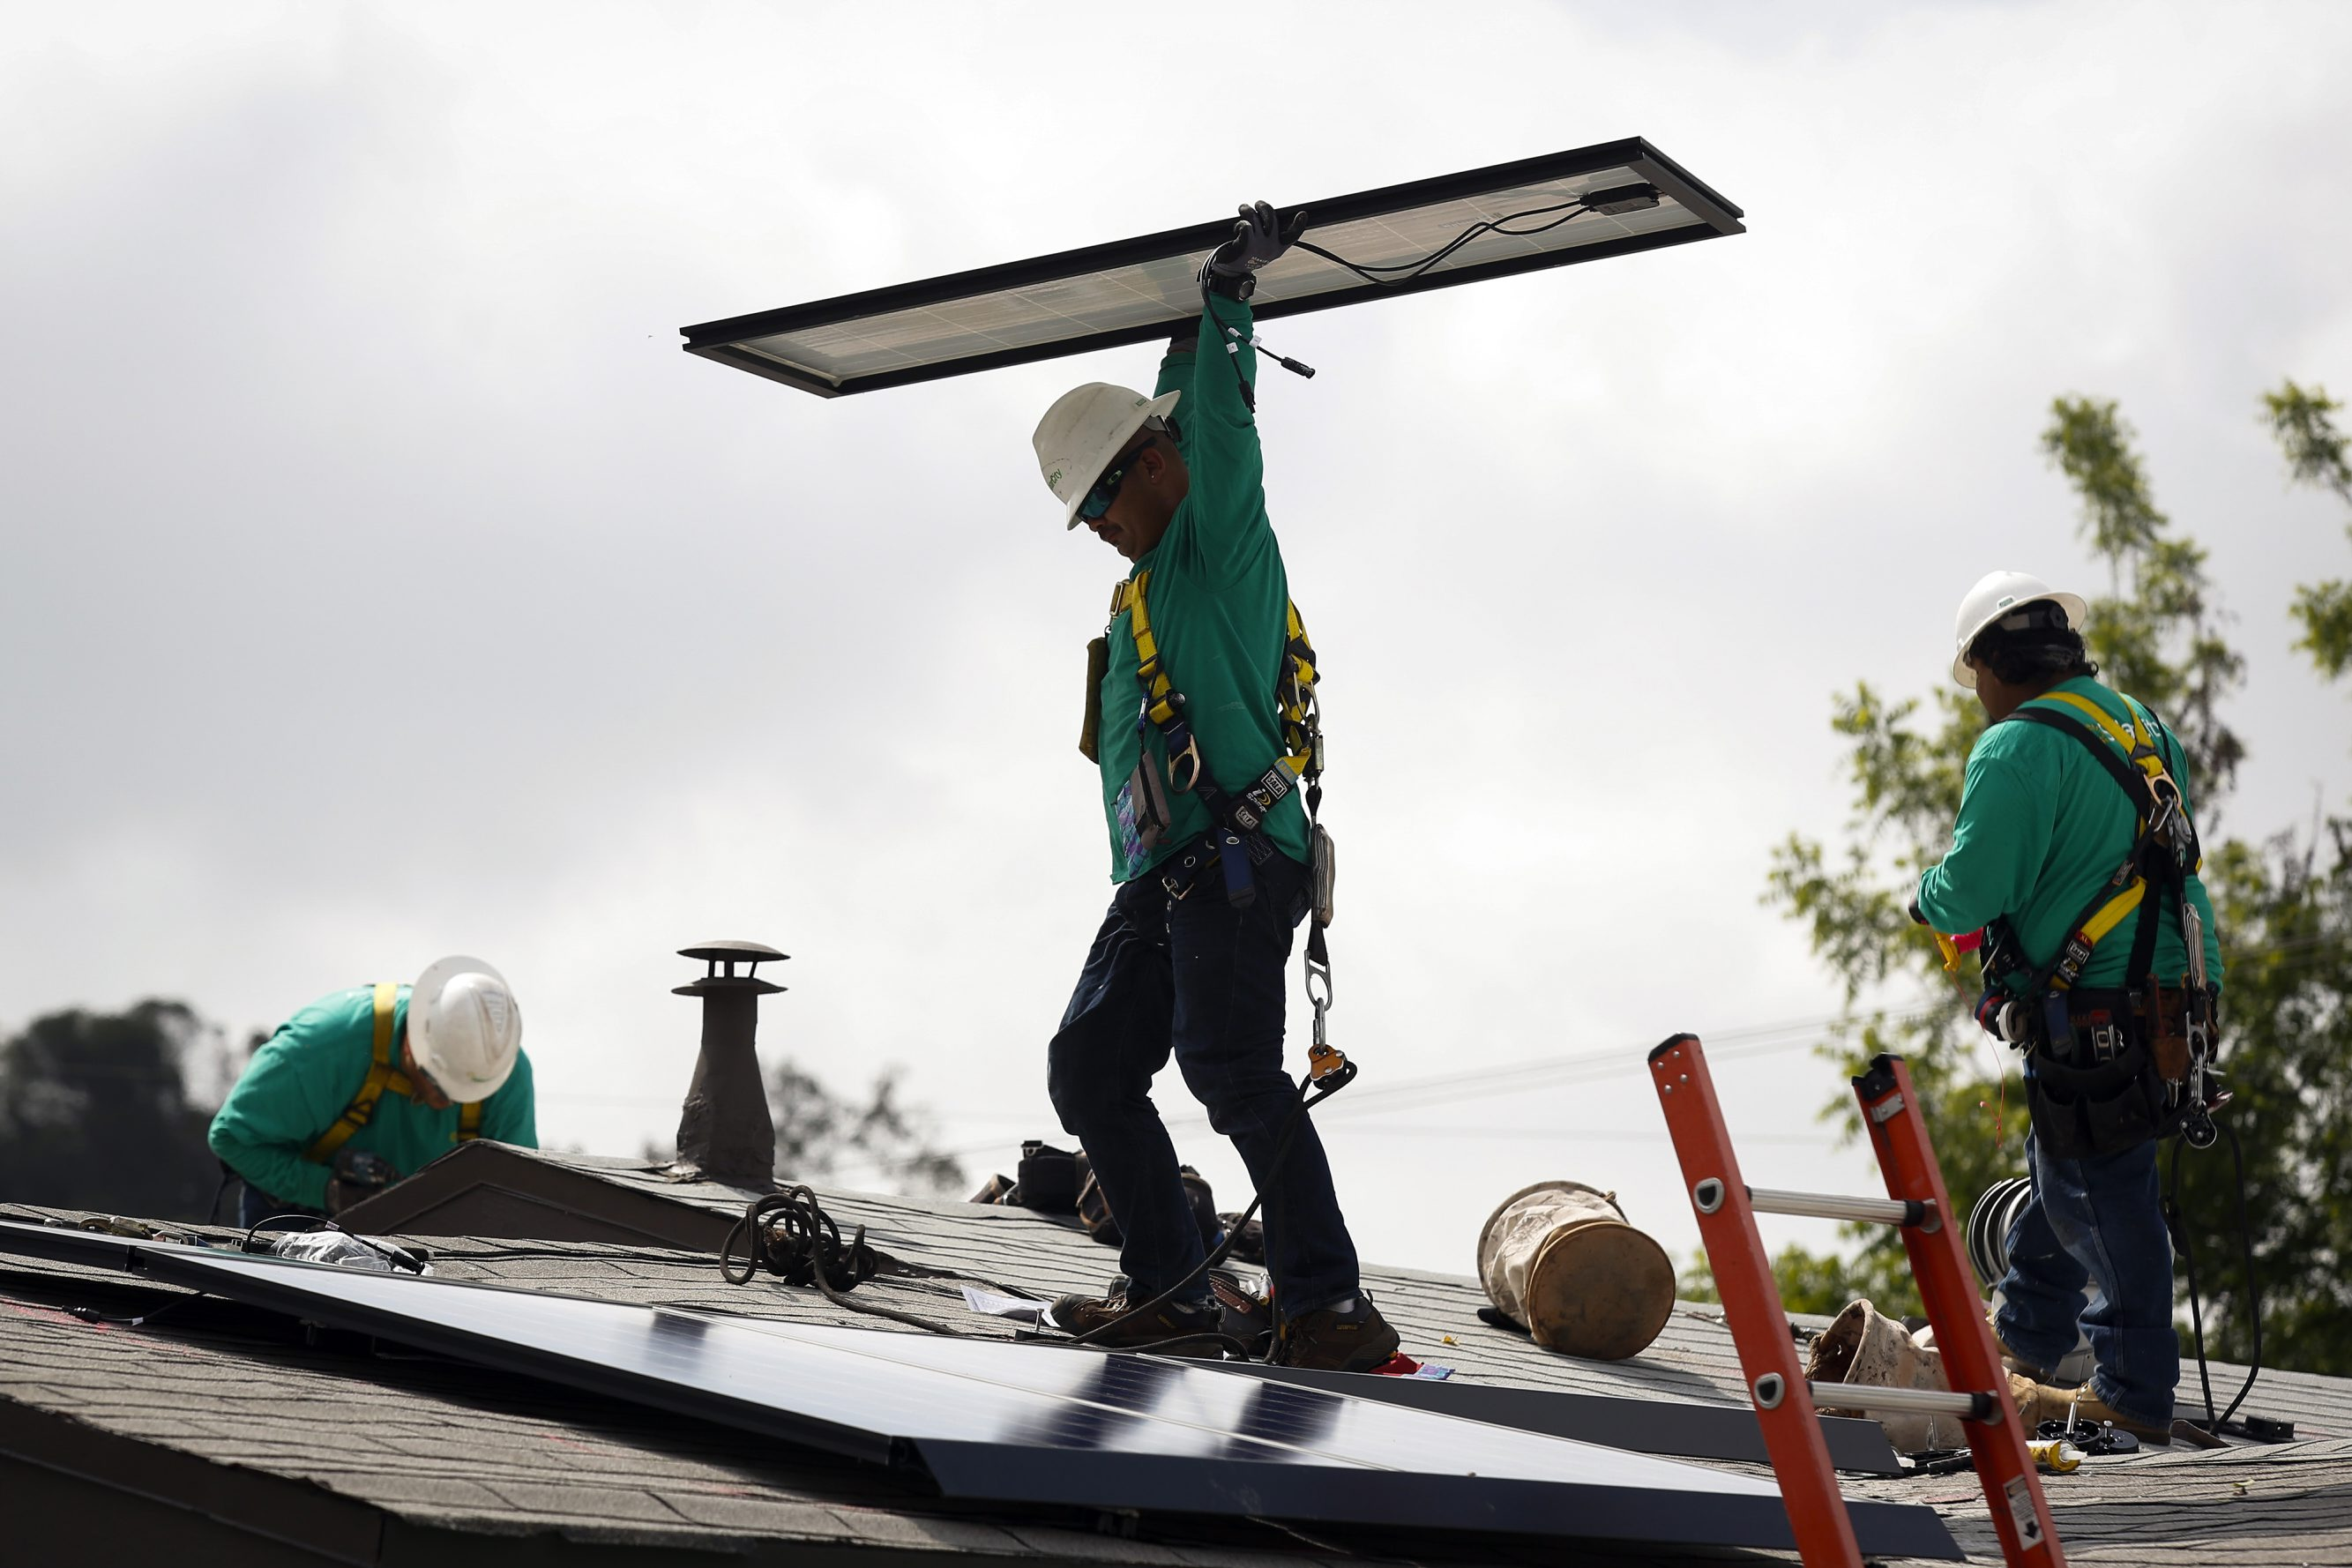 David Robinson: The latest in SolarCity exodus is Peter Rive